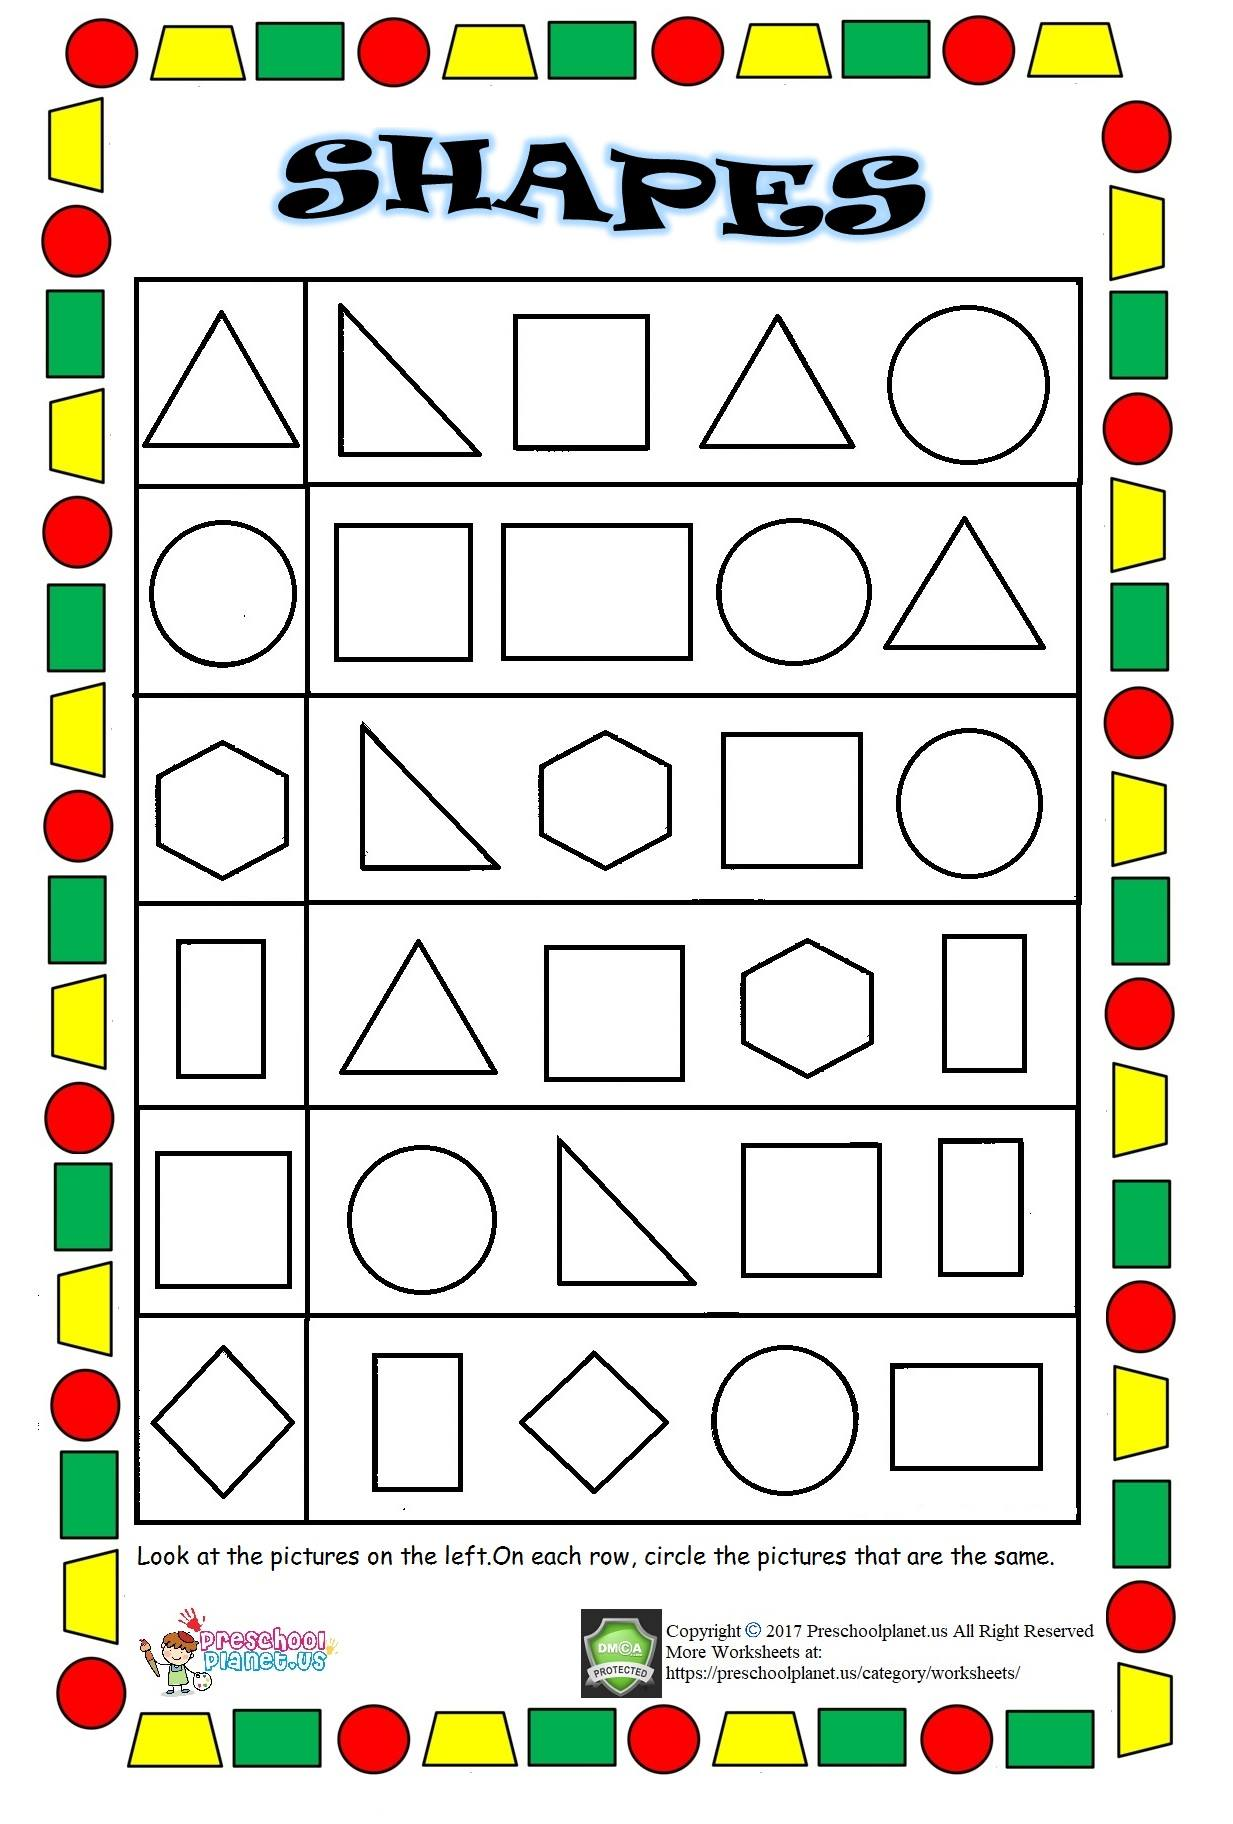 Hidden Shapes Worksheet Preschoolplanet